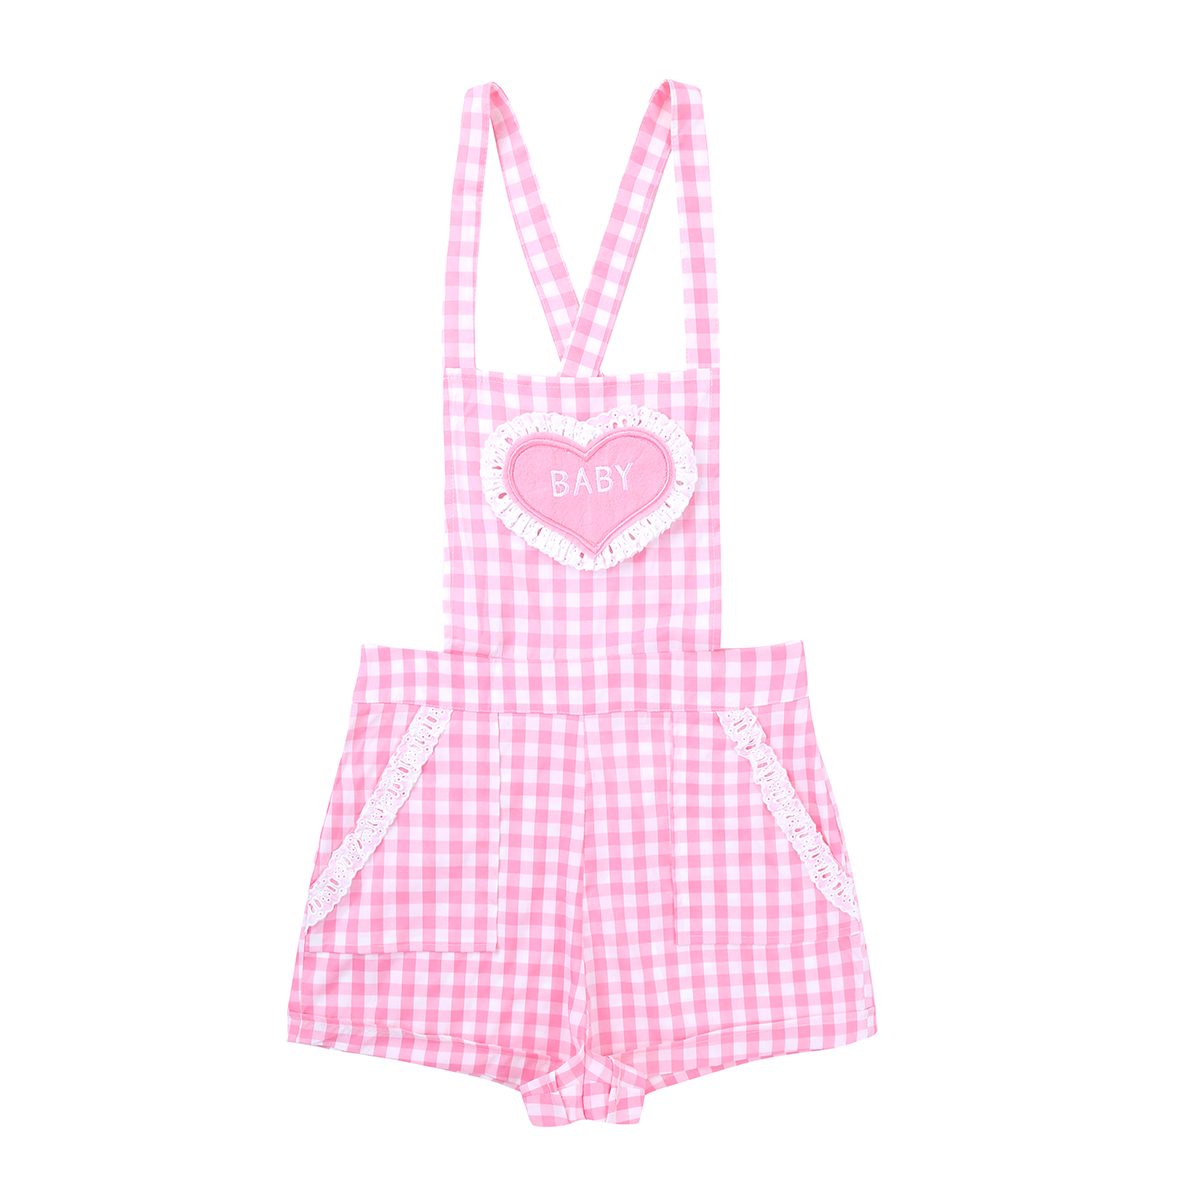 DDLG outfit